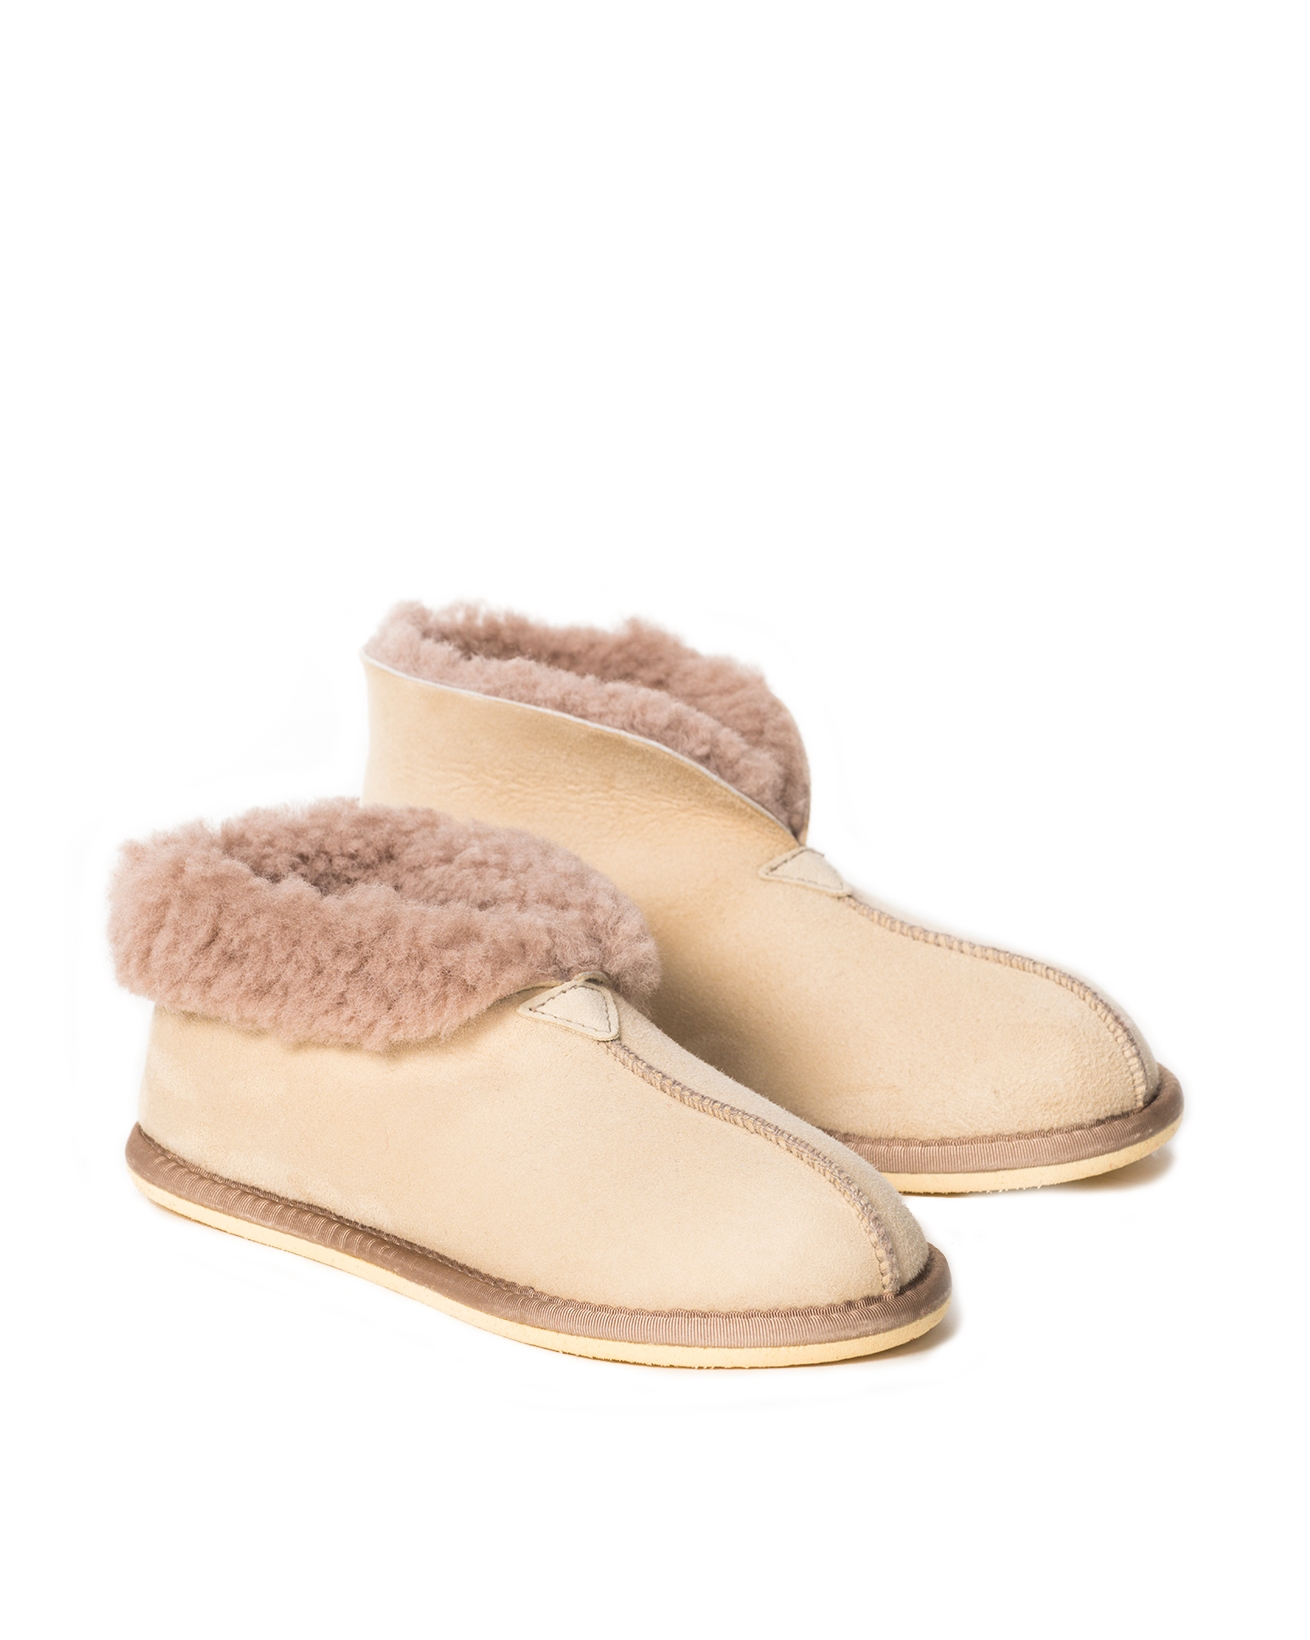 Ladies Sheepskin Bootee Slipper - Size 6 - Oatmeal - 2073